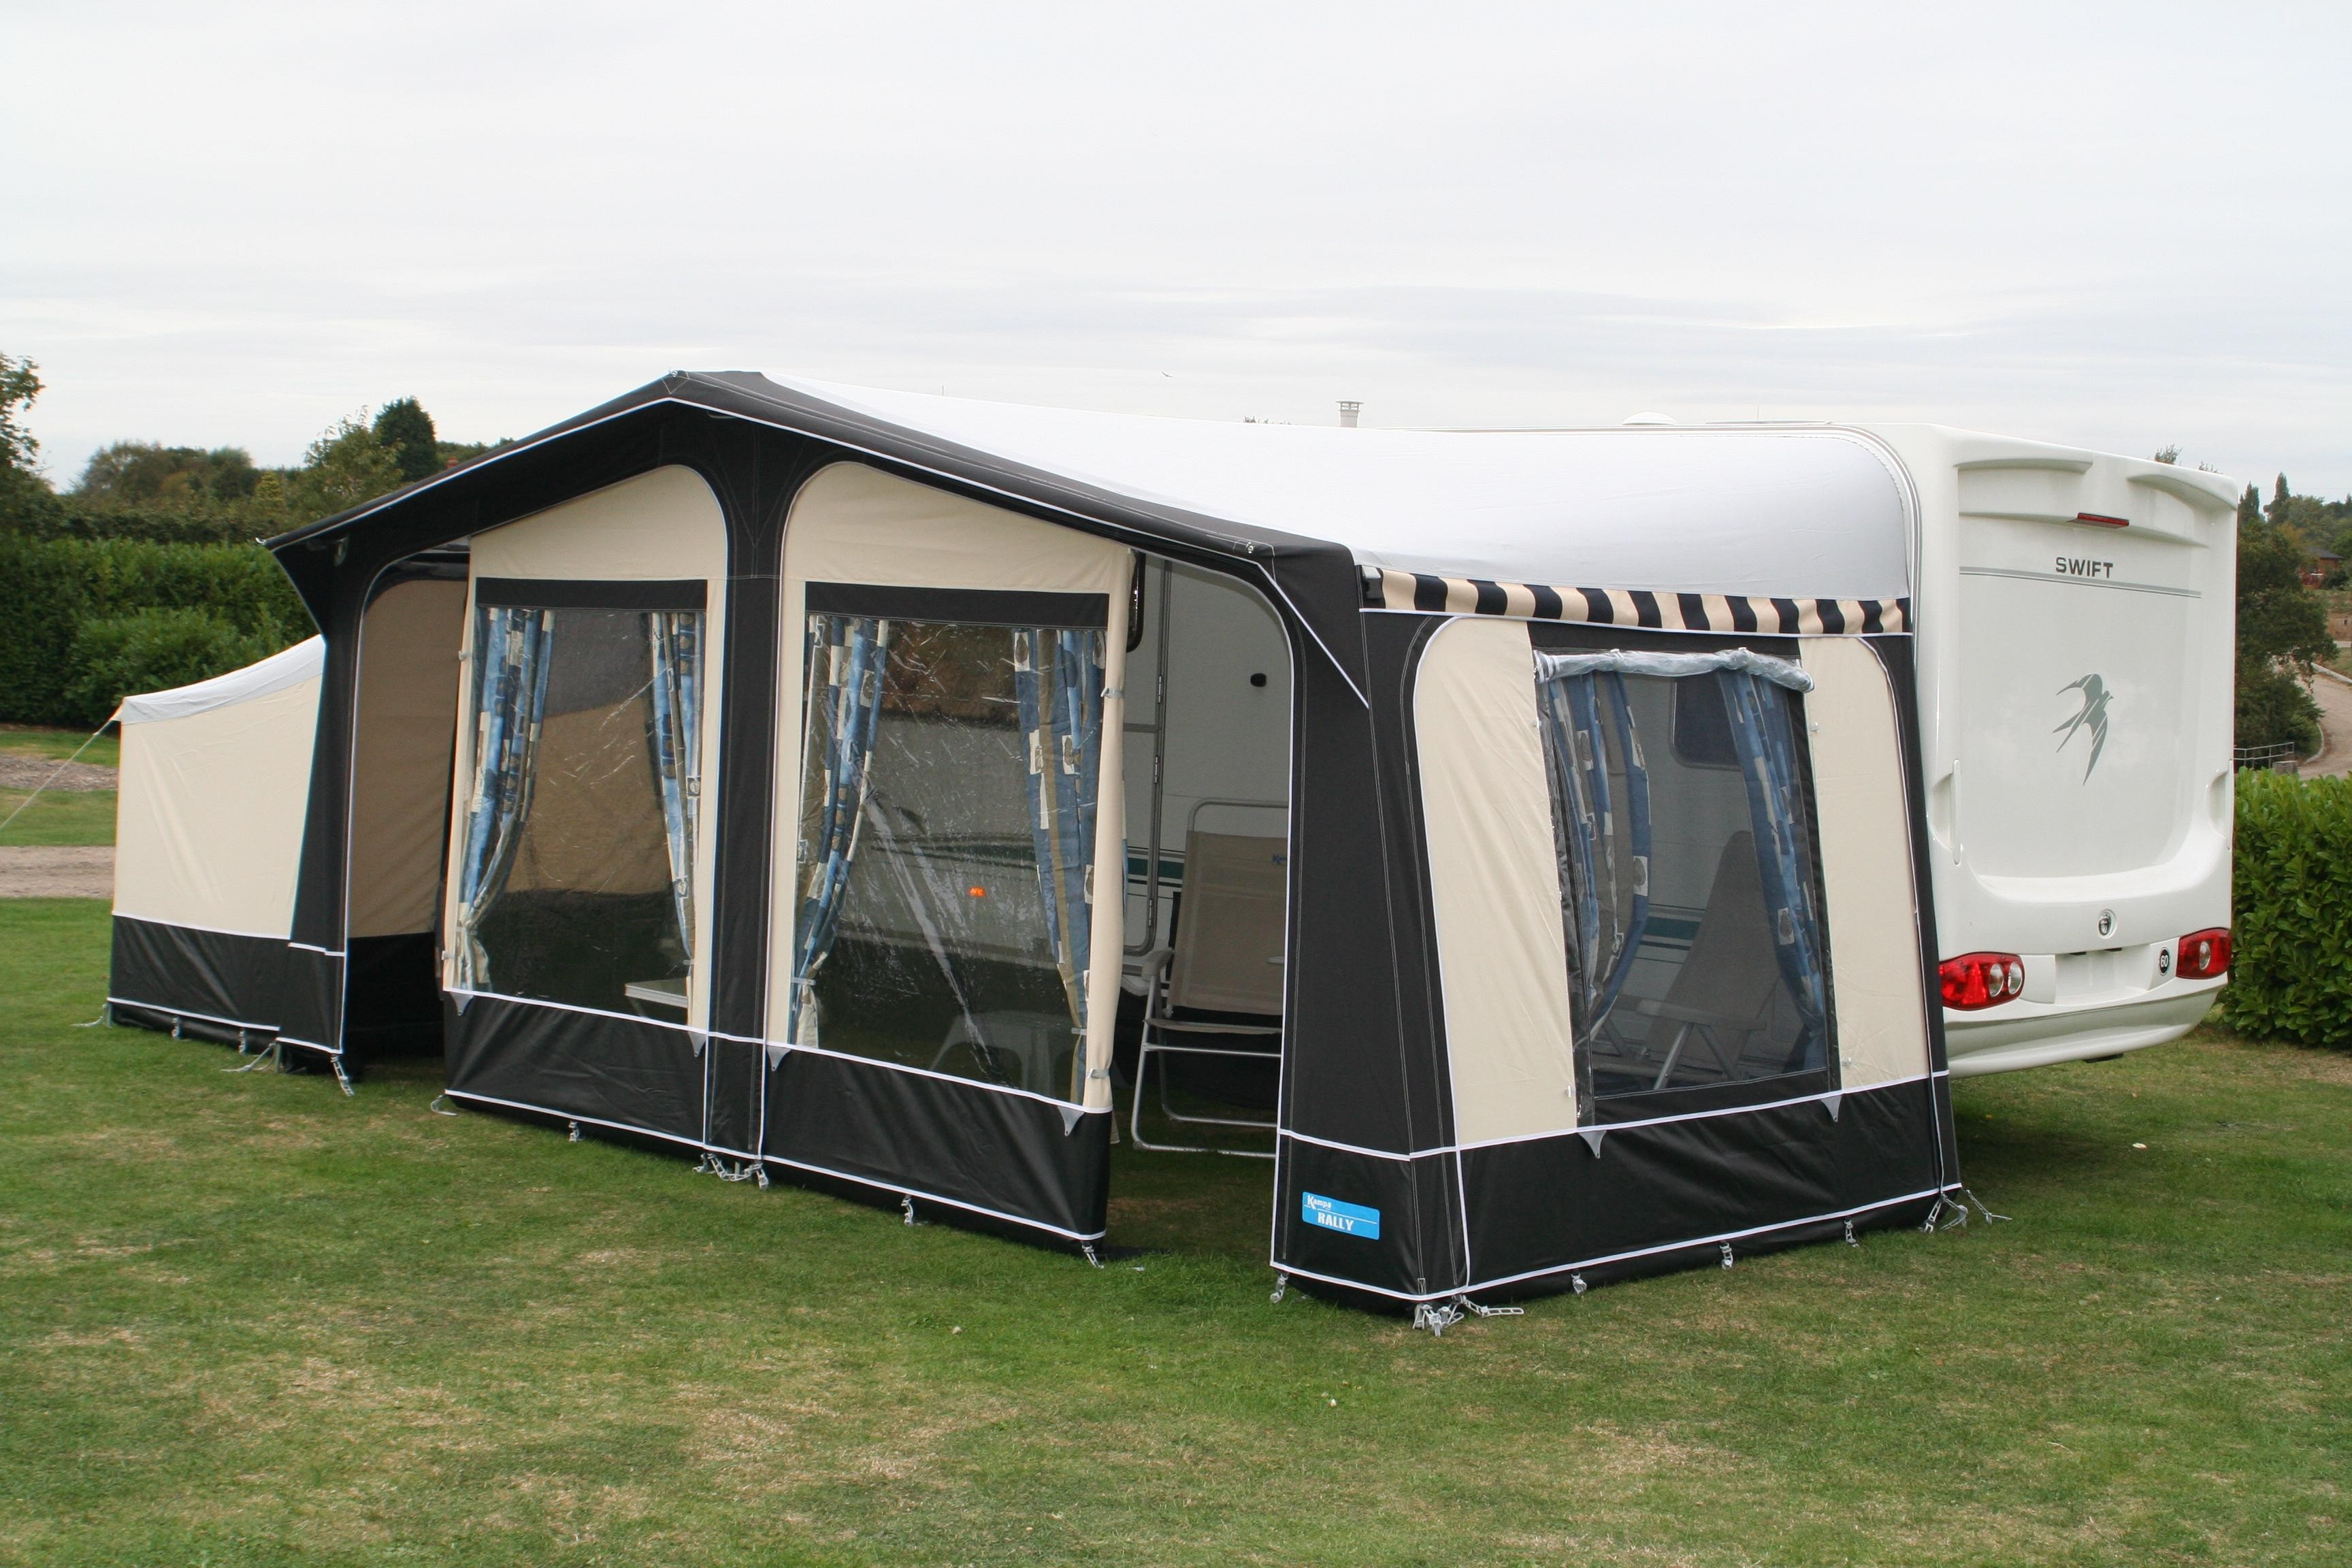 Kampa Carnival Awning - 950 (Size 13) by Kampa for £825.50